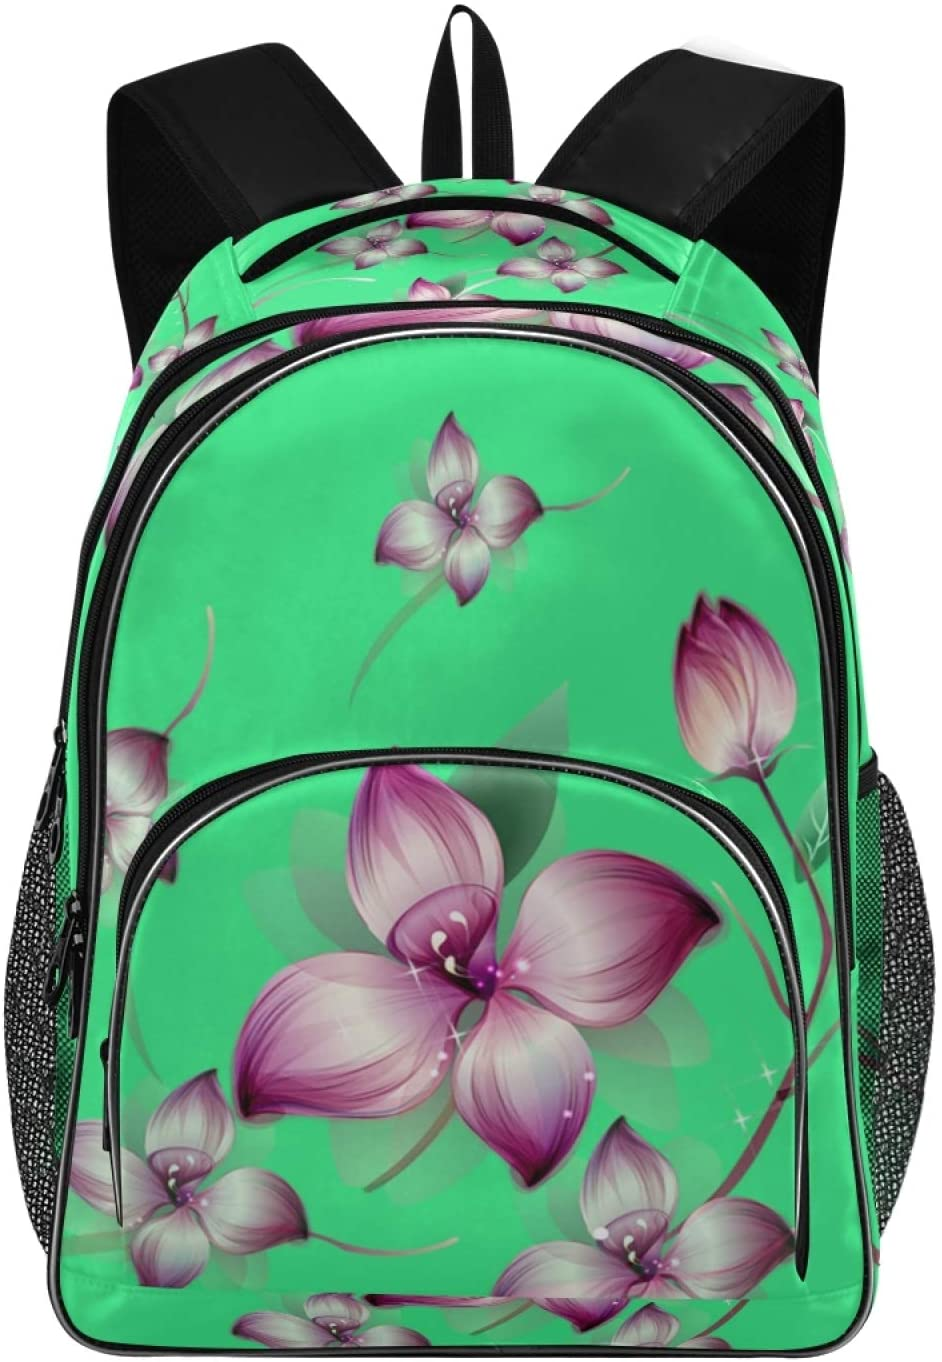 Travel Laptop Backpack with USB Charging Compatible Design for Women School College Students Backpack Fits 15.6 Inch Laptop(Purple Flower)